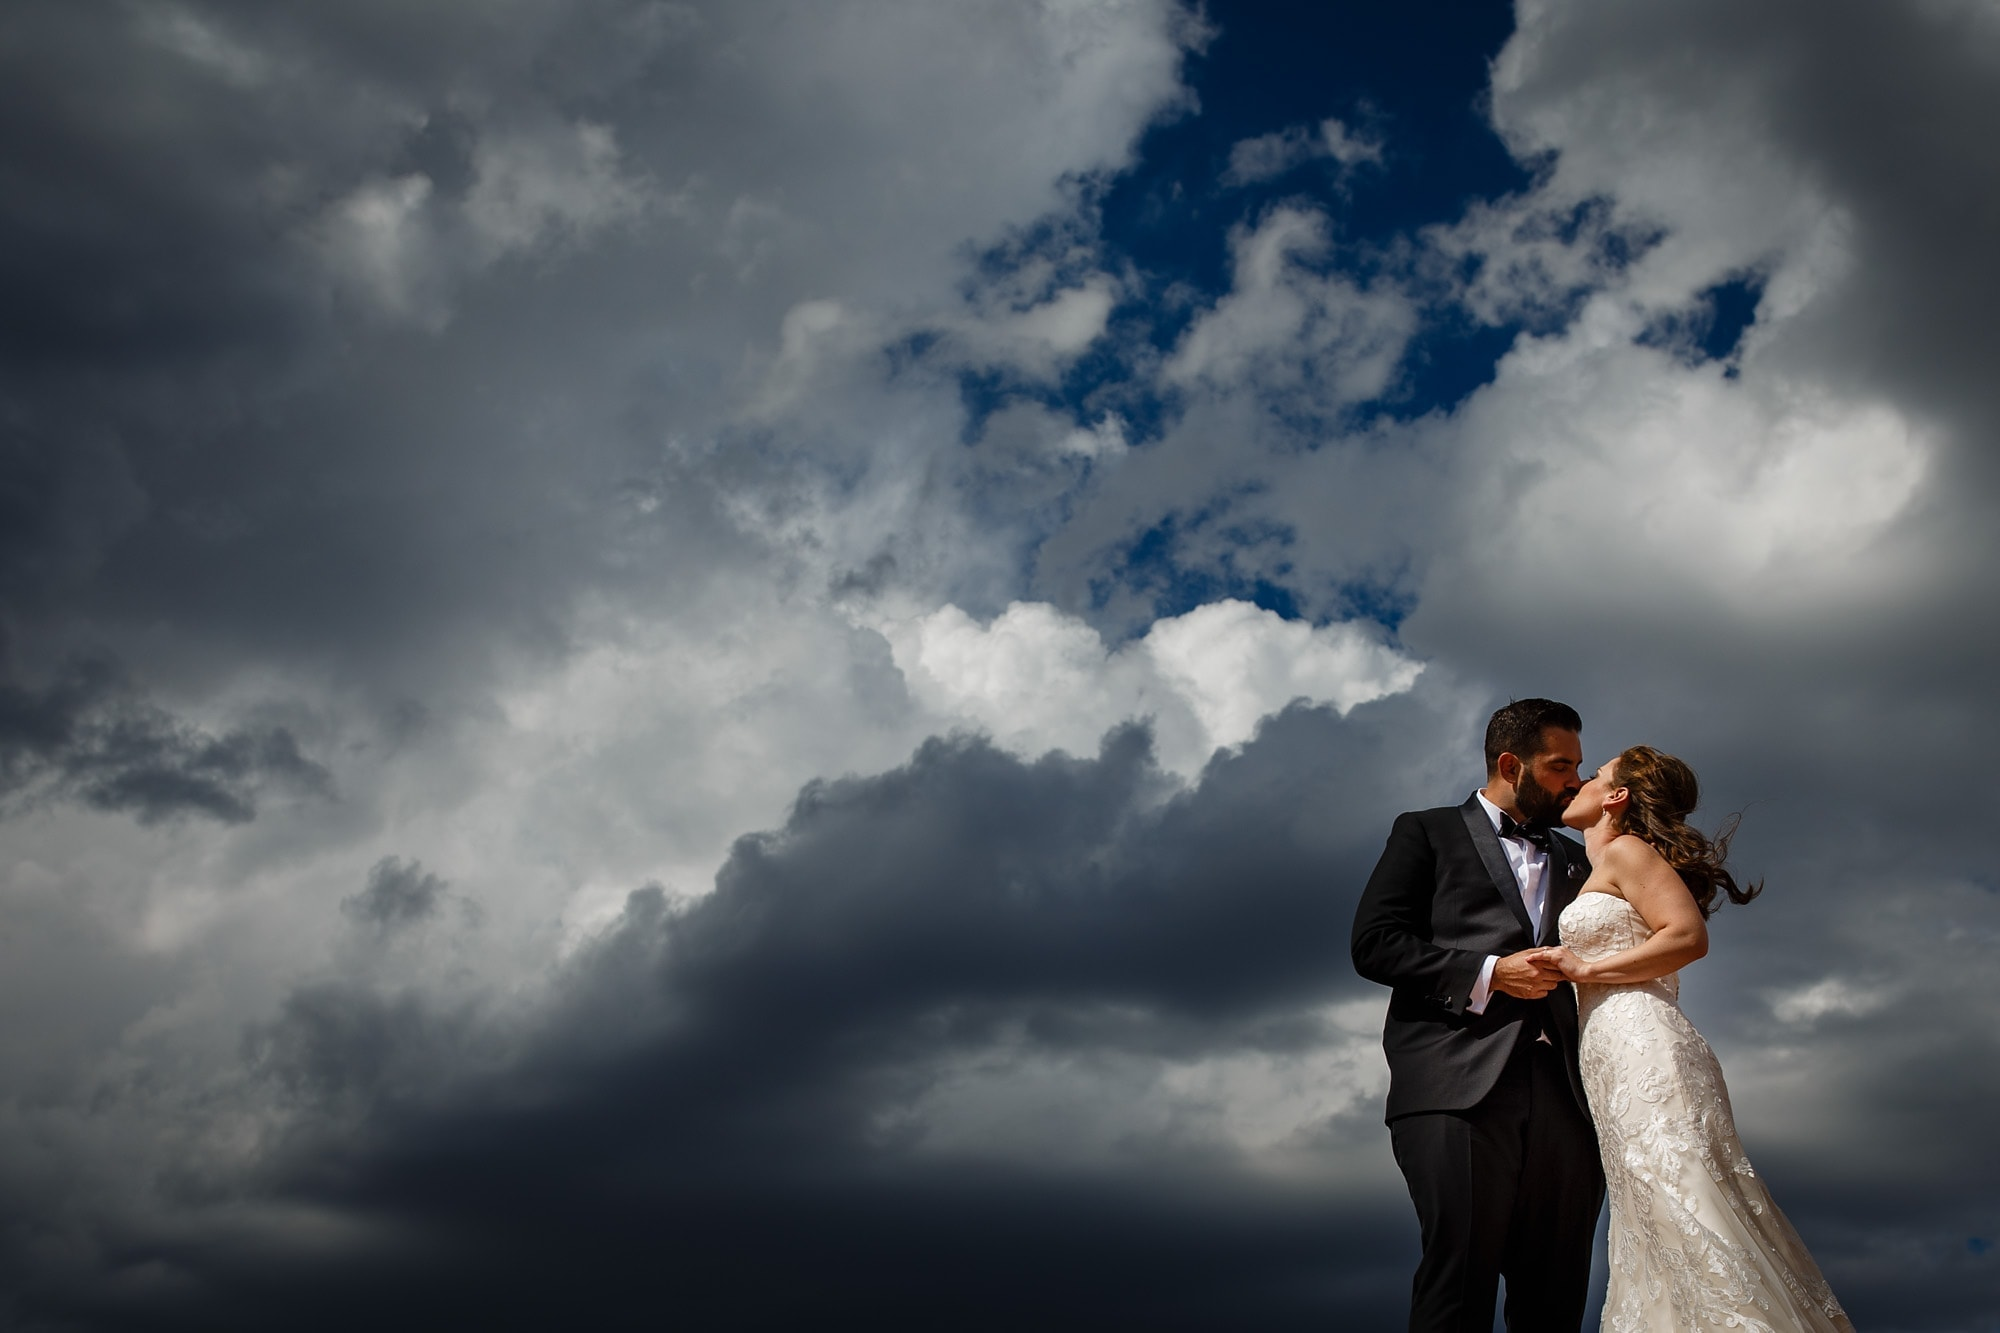 The couple share a moment beneath the clouds and sky for a portrait at Garden of the Gods park in Colorado Springs